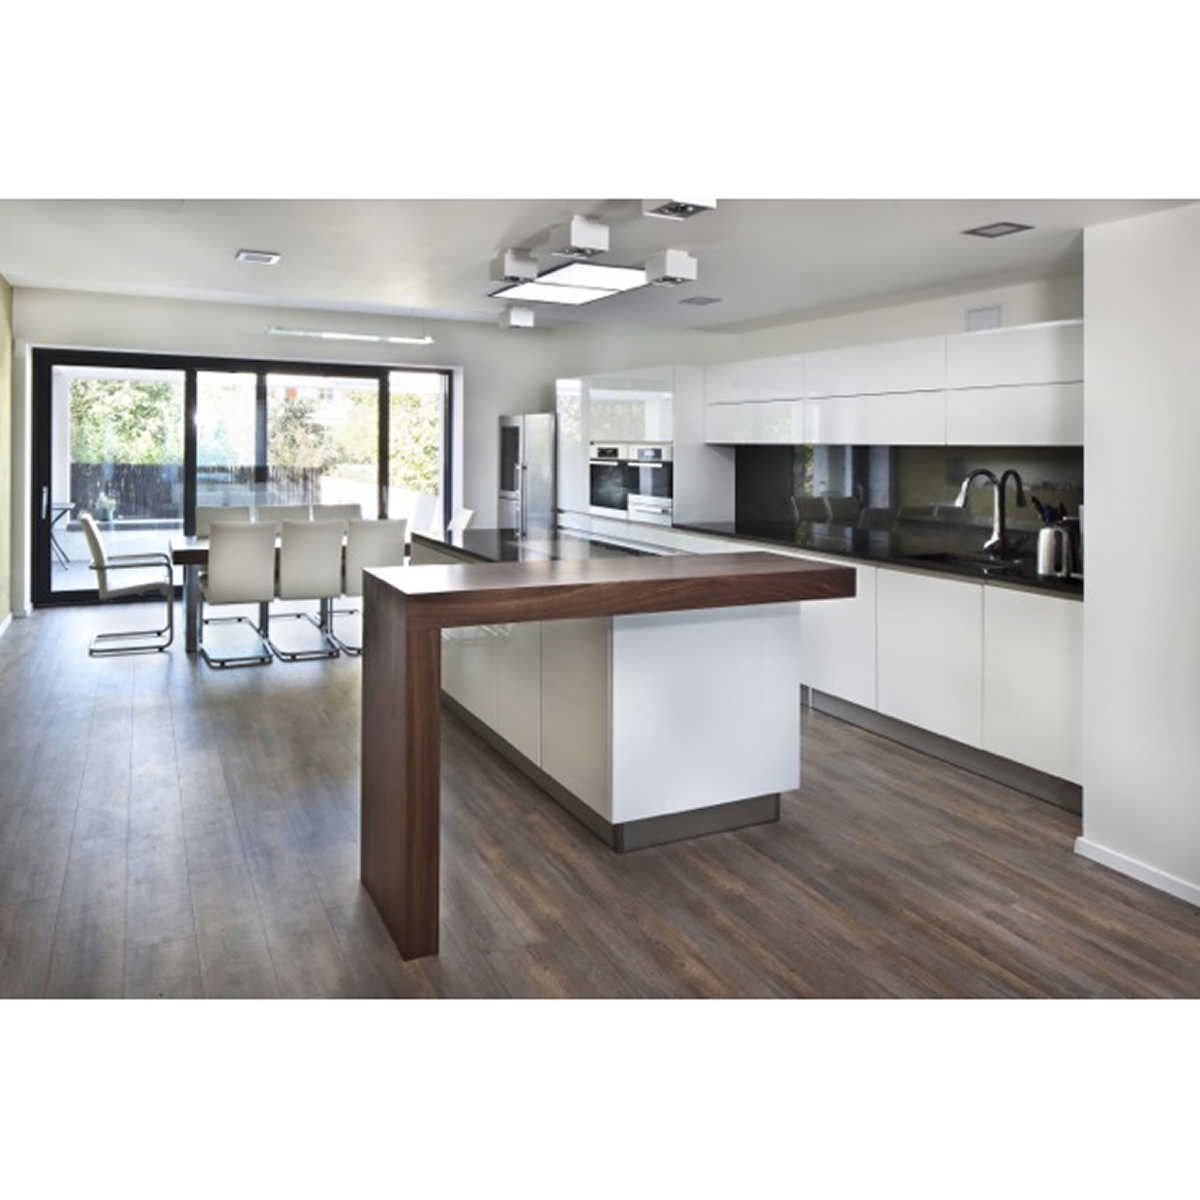 Kairos Imperial Luxury 16 5 Cm 6 5 In Embossed Vinyl Plank Flooring Modern Kitchen Island Design